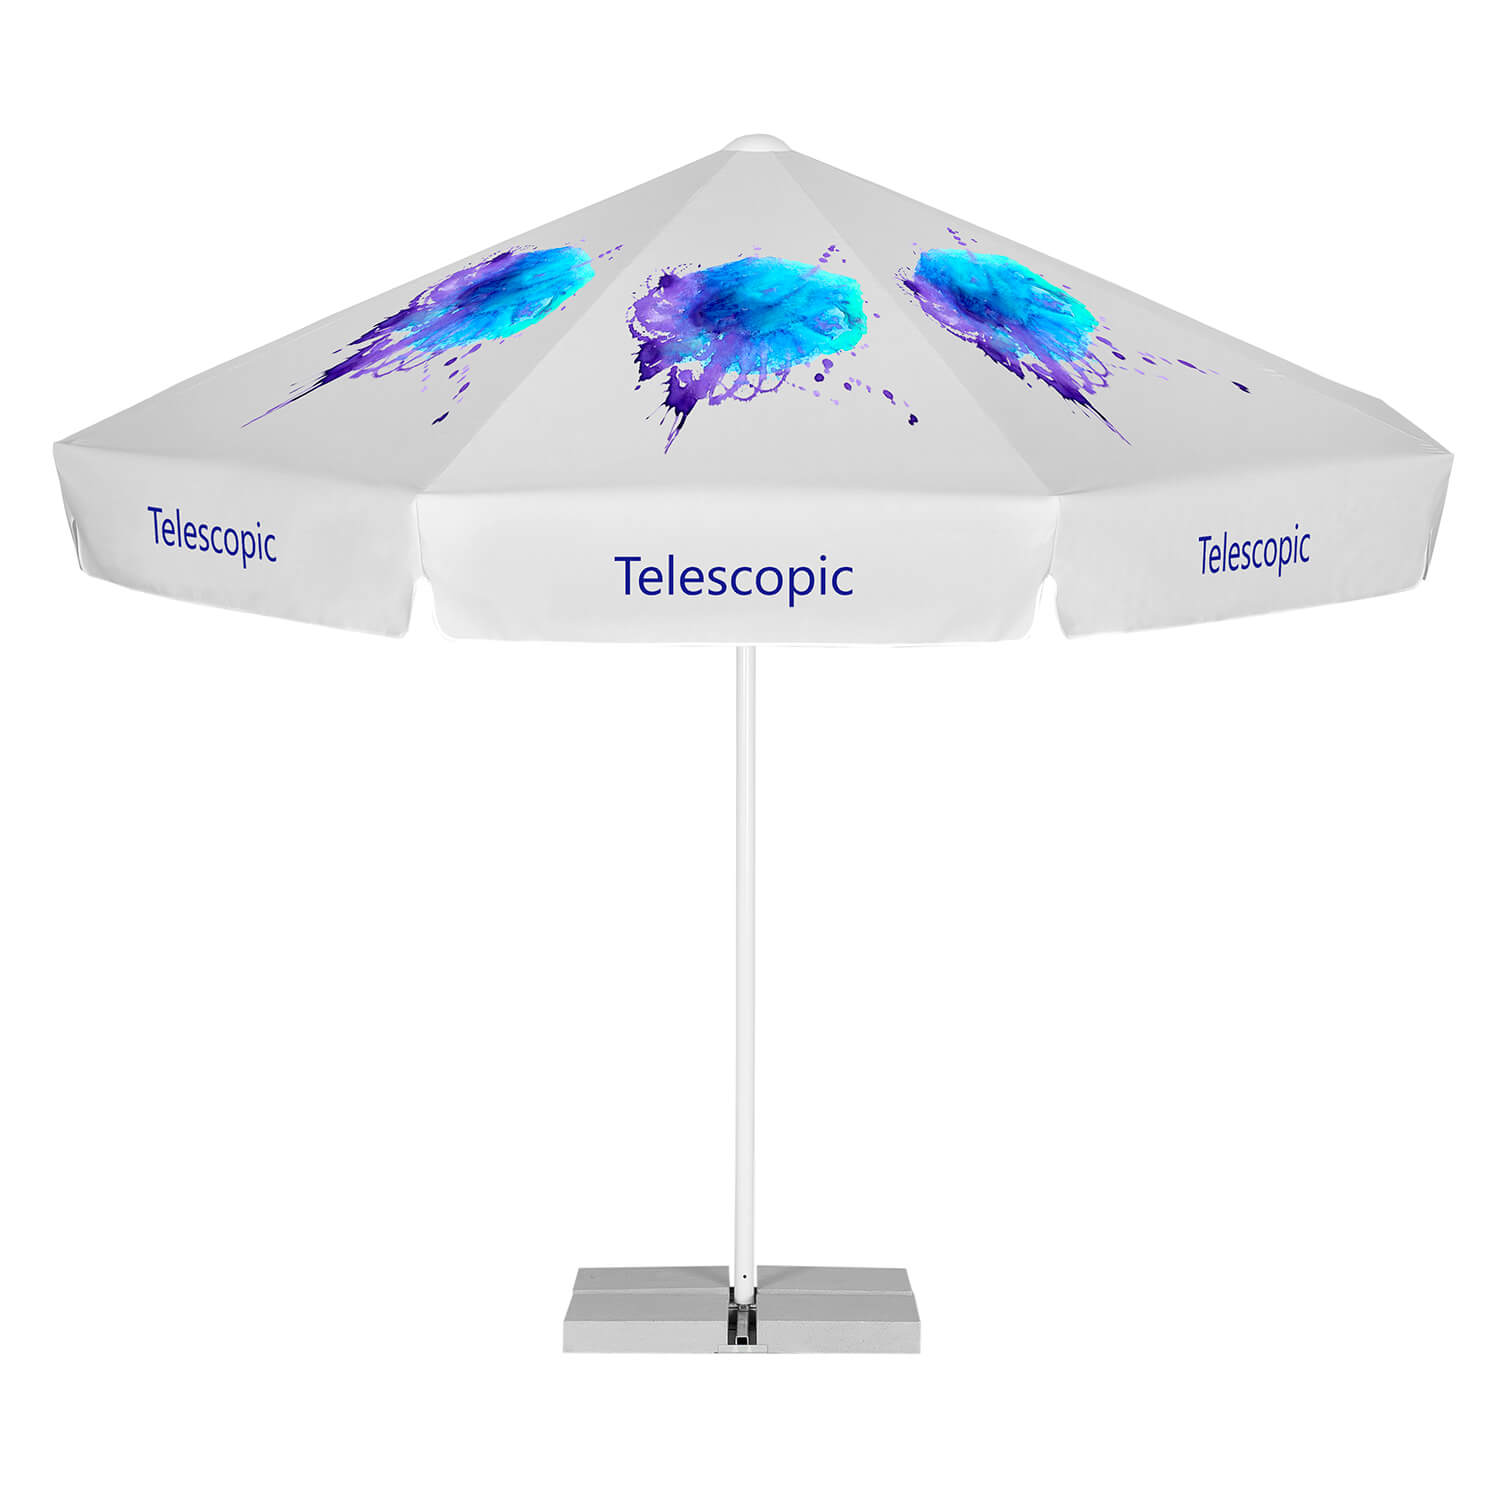 4. Telescopic Parasols with logo